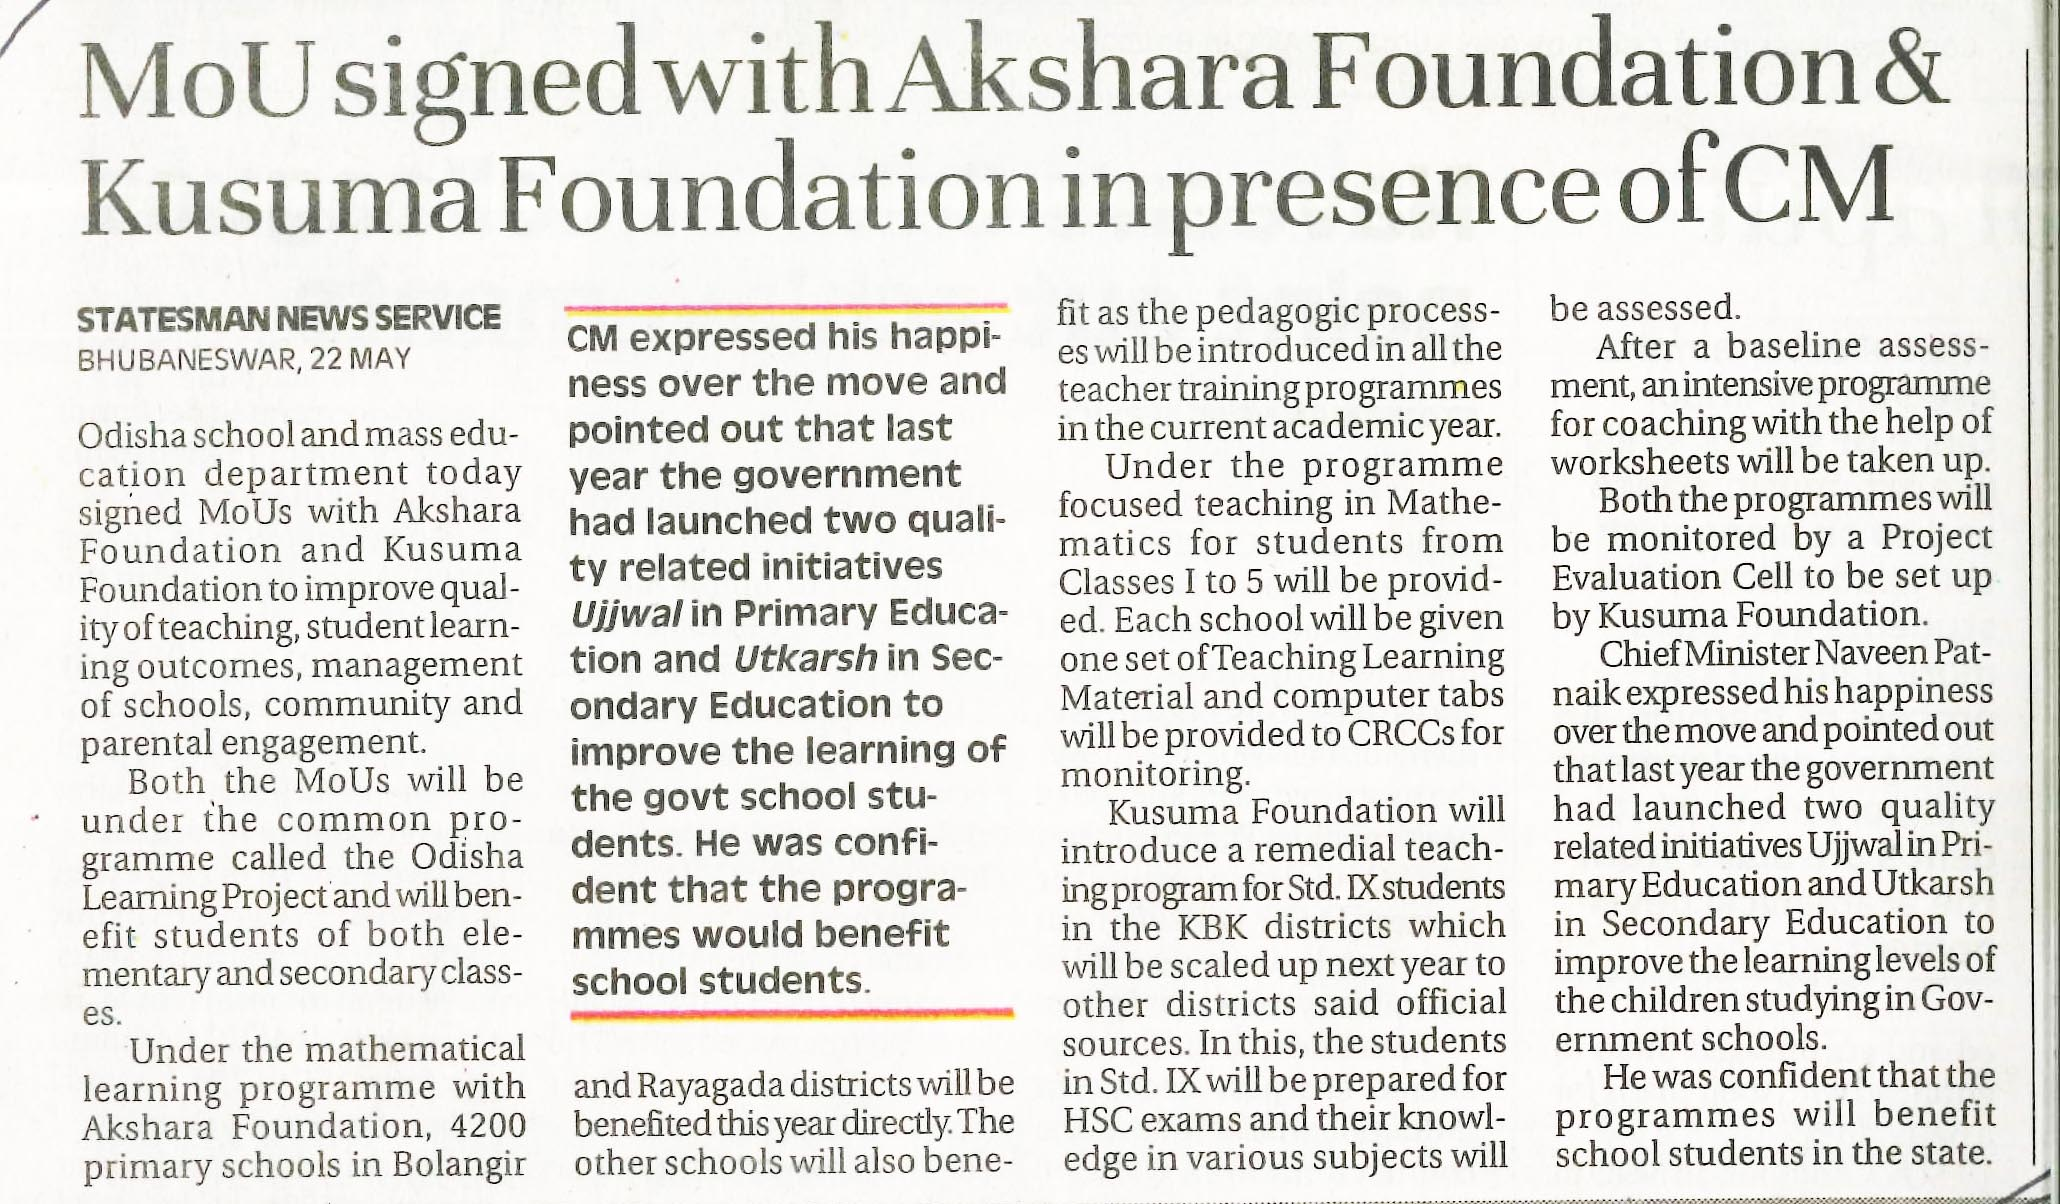 MoU signed with Akshara Foundation & Kusuma Foundation in presence of CM